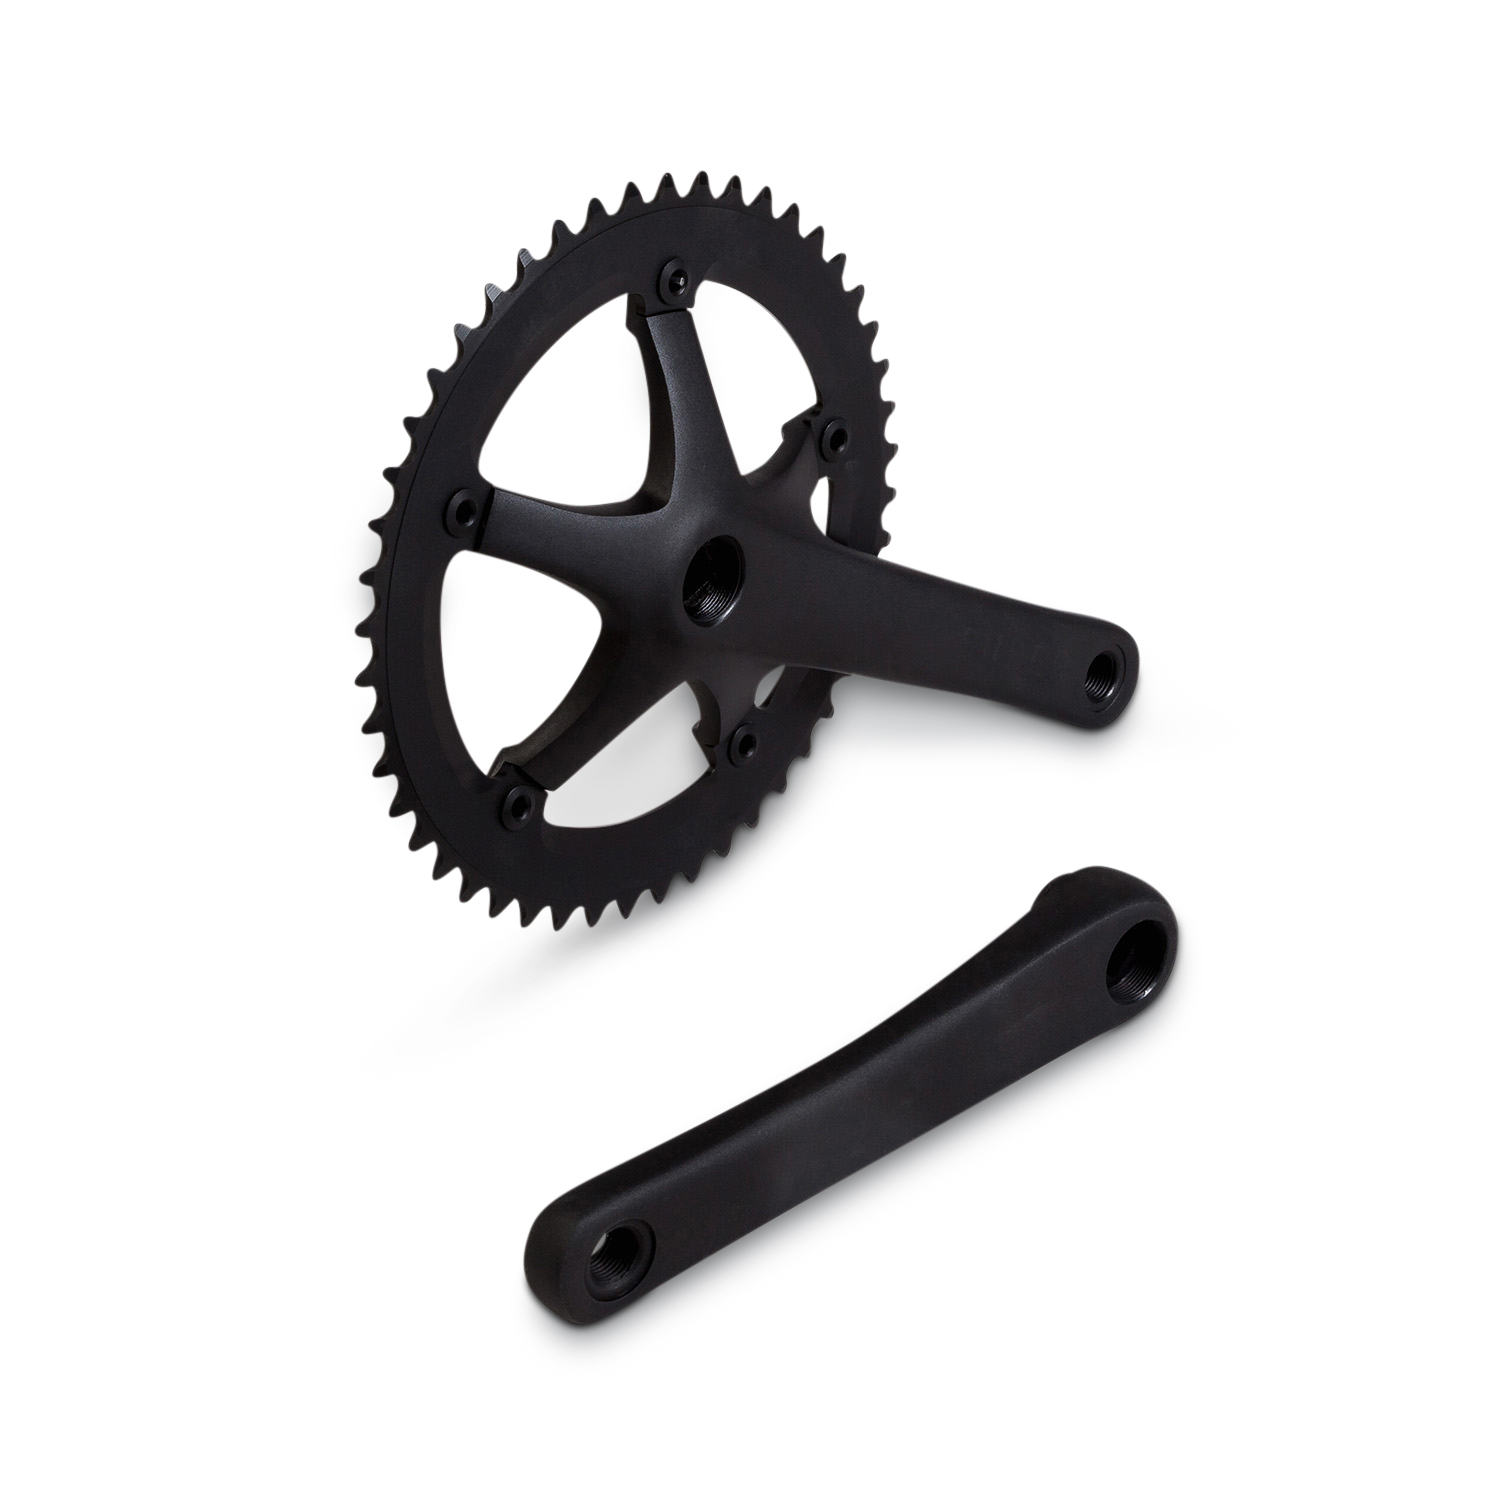 8bar_super cranks_black_fixie_fixi_fixed gear (1)